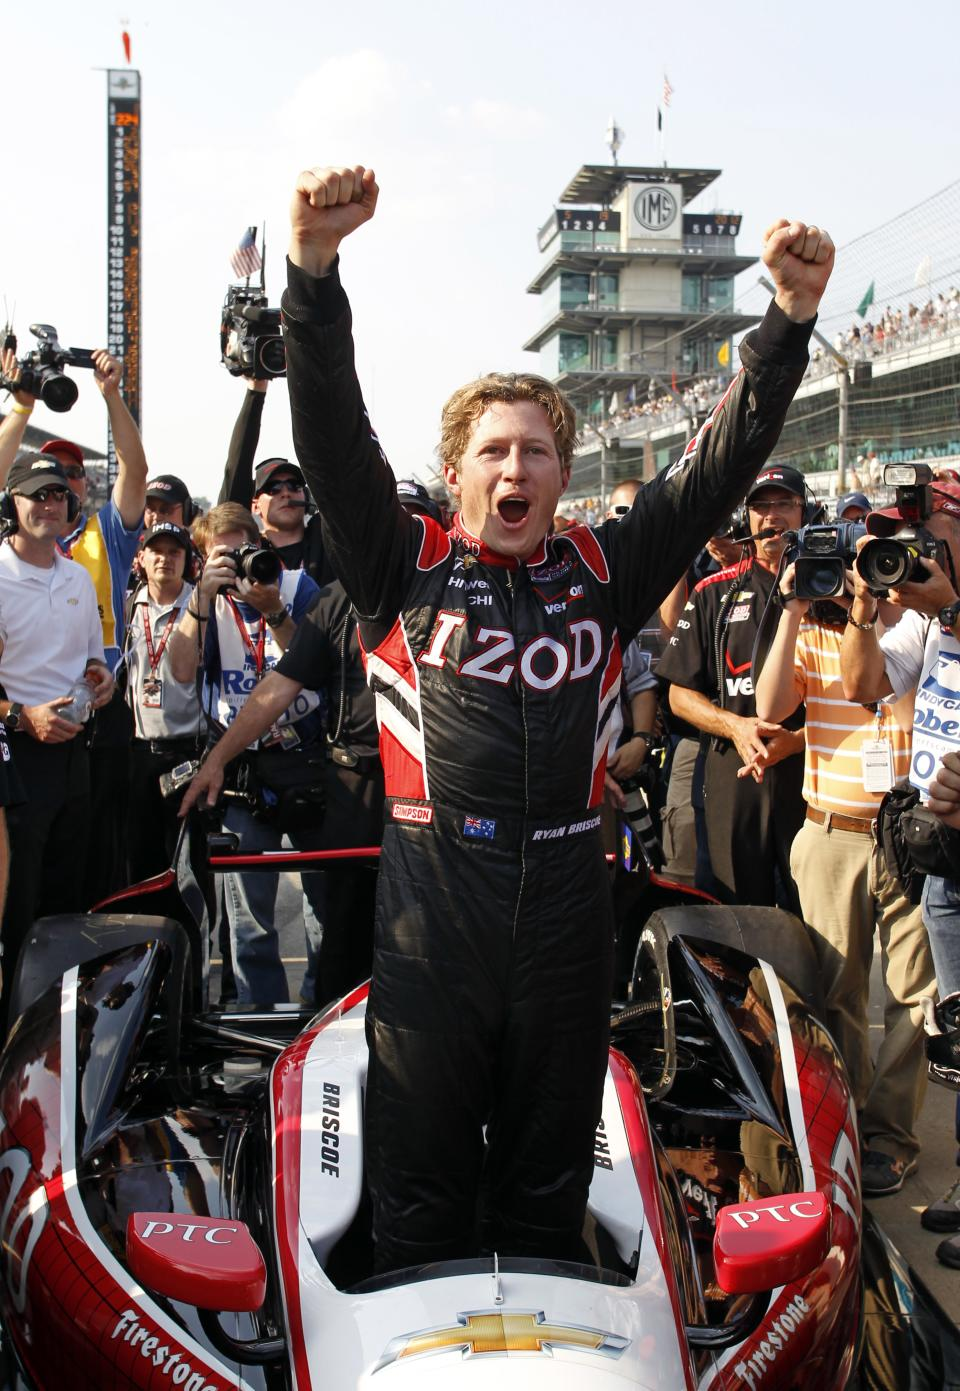 IndyCar driver Ryan Briscoe, of Australia, celebrates winning the pole on the first day of qualifications for the Indianapolis 500 auto race at the Indianapolis Motor Speedway in Indianapolis, Saturday, May 19, 2012. (AP Photo/Tom Strattman)